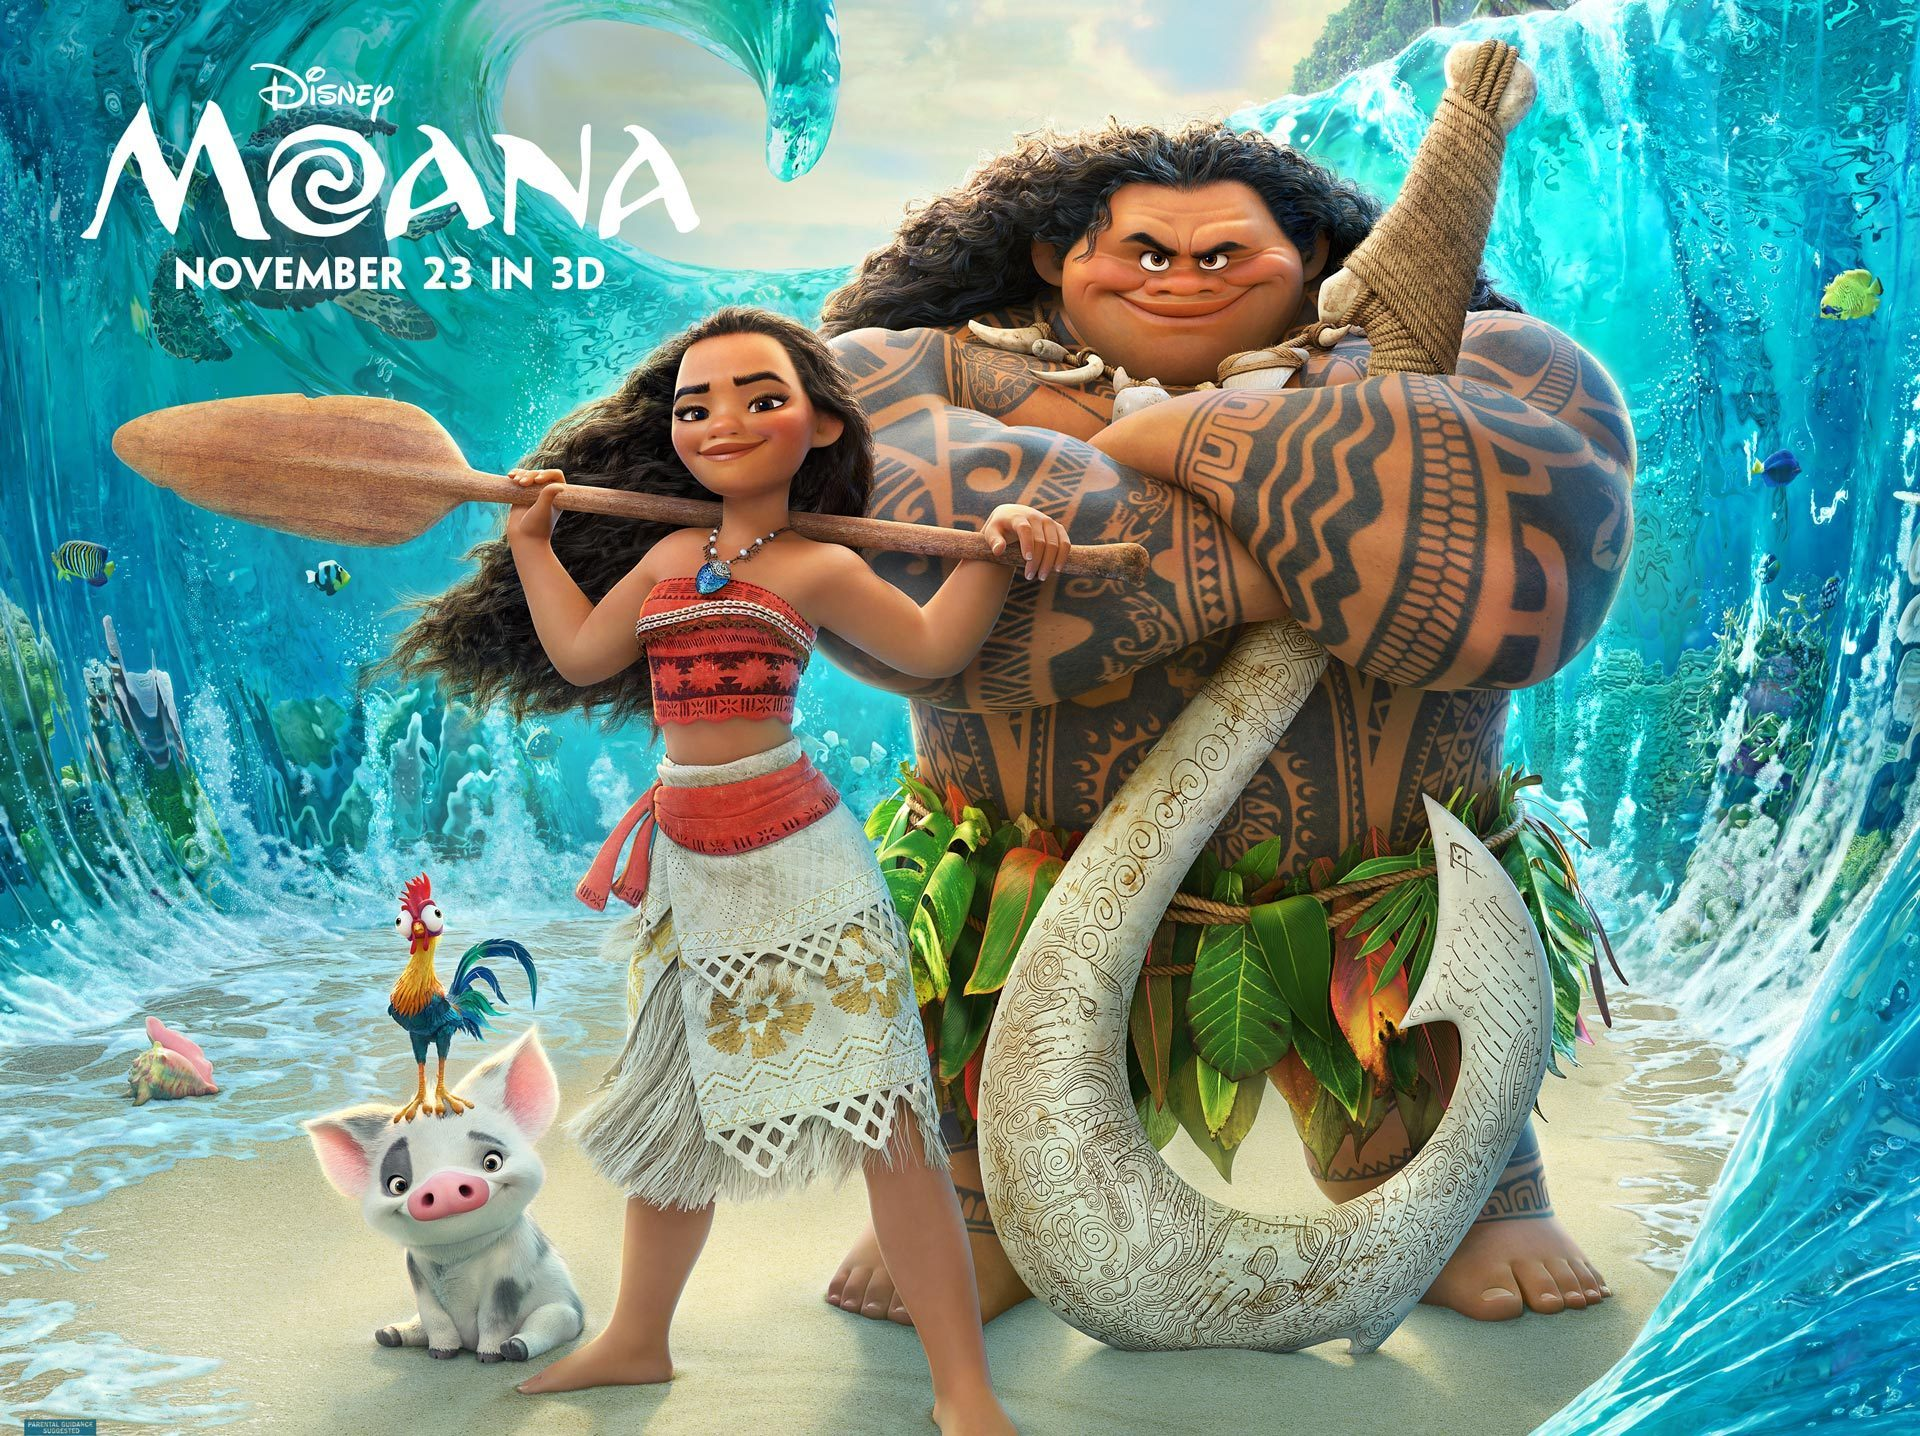 Moana Is An Uncoventional And Worthy Addition To The Disney Princess Legacy